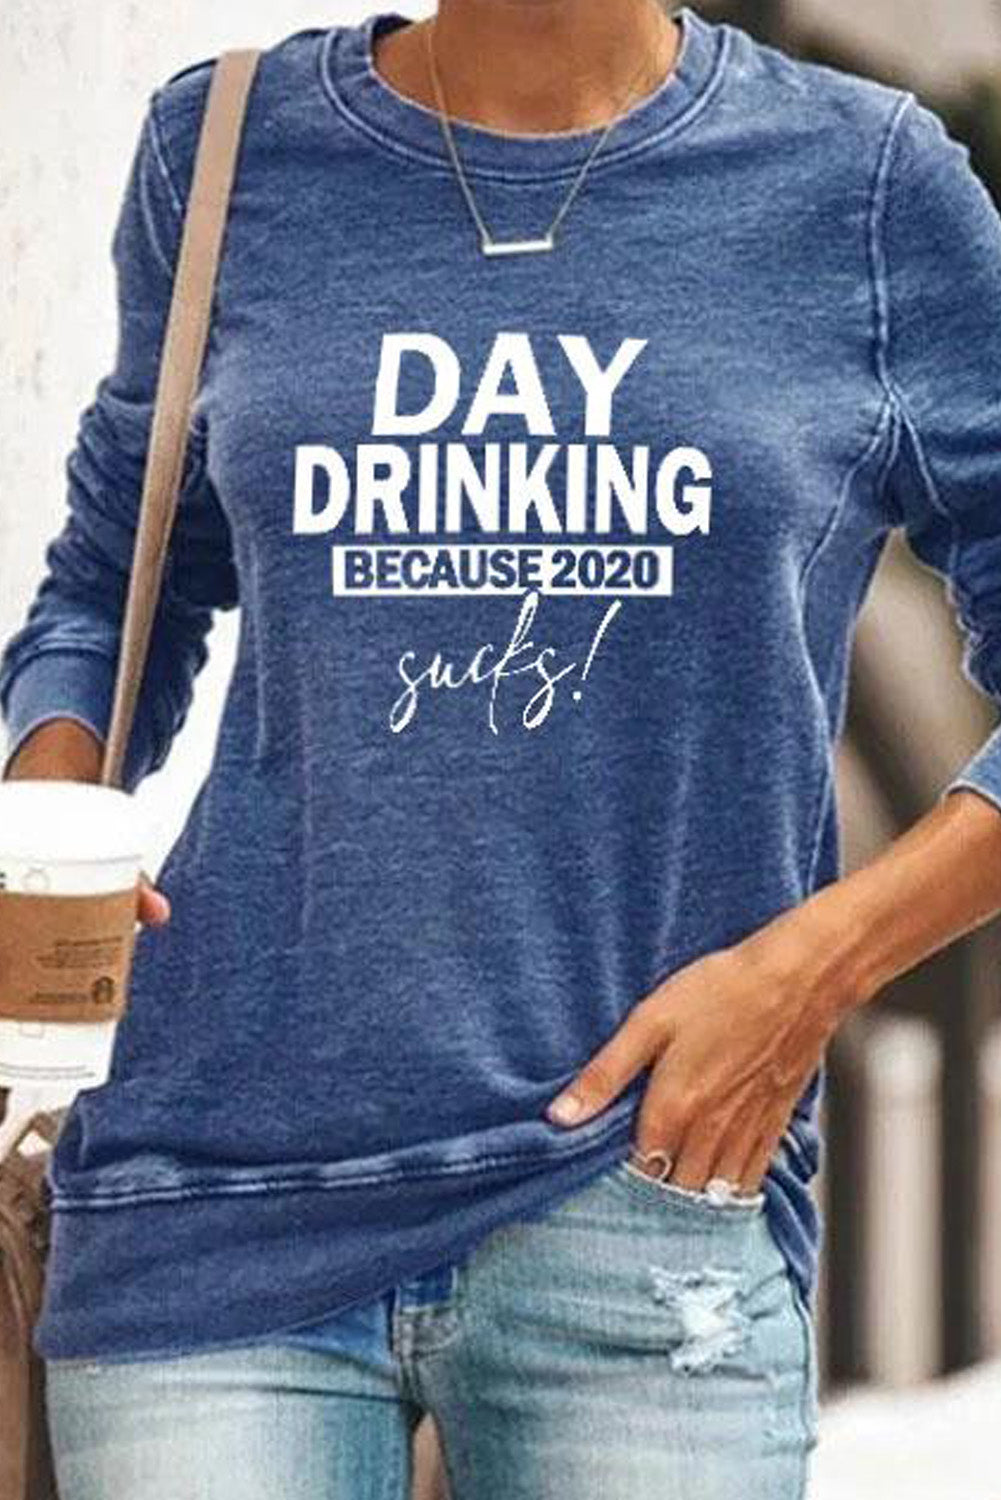 Day Drinking Because 2020 Sucks Pullover Blue Sweatshirt